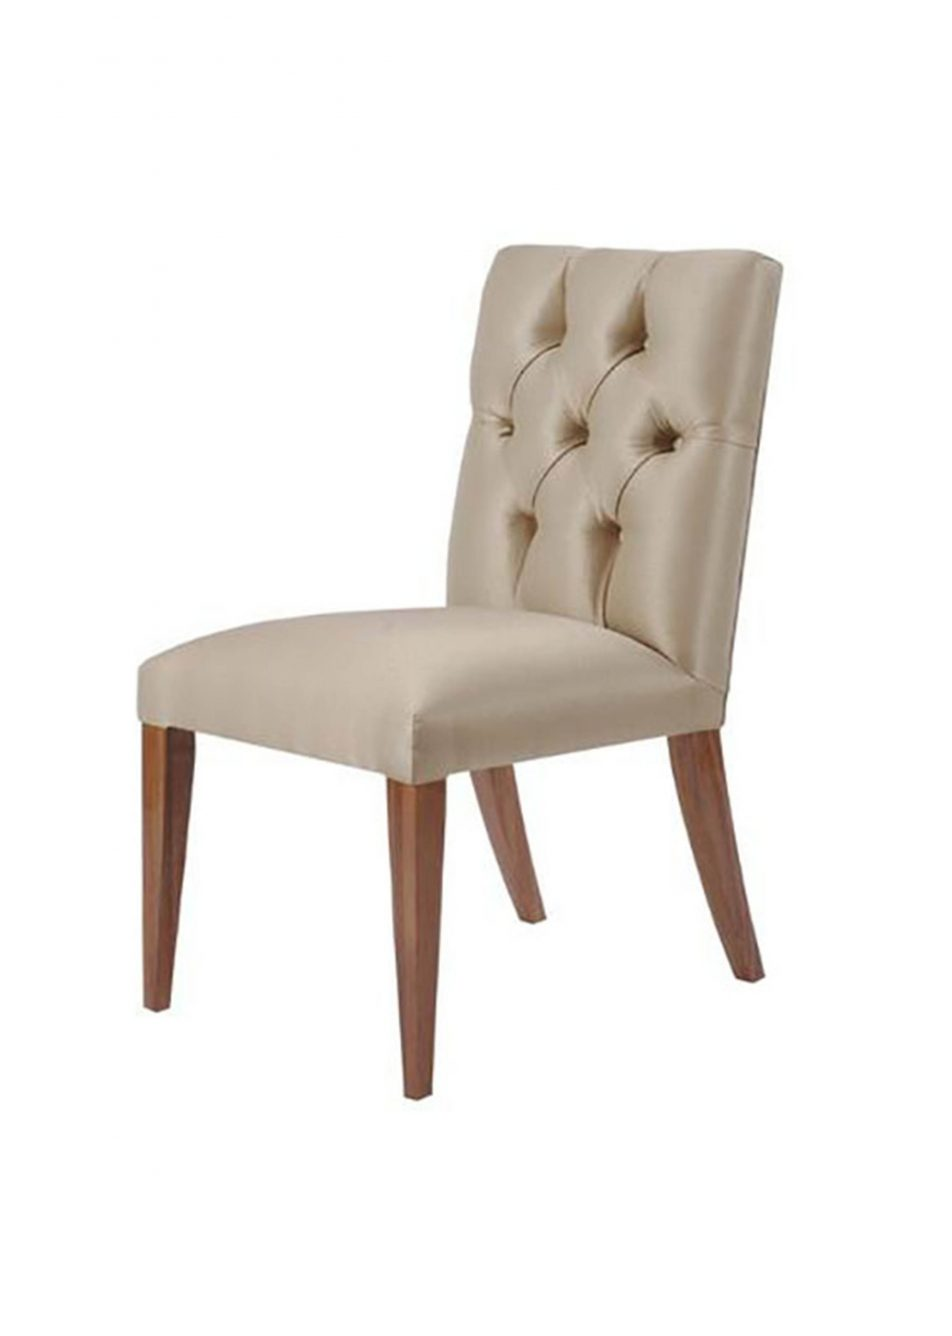 House Haven Dining Chairs 0001 St Germaine Dining Chair